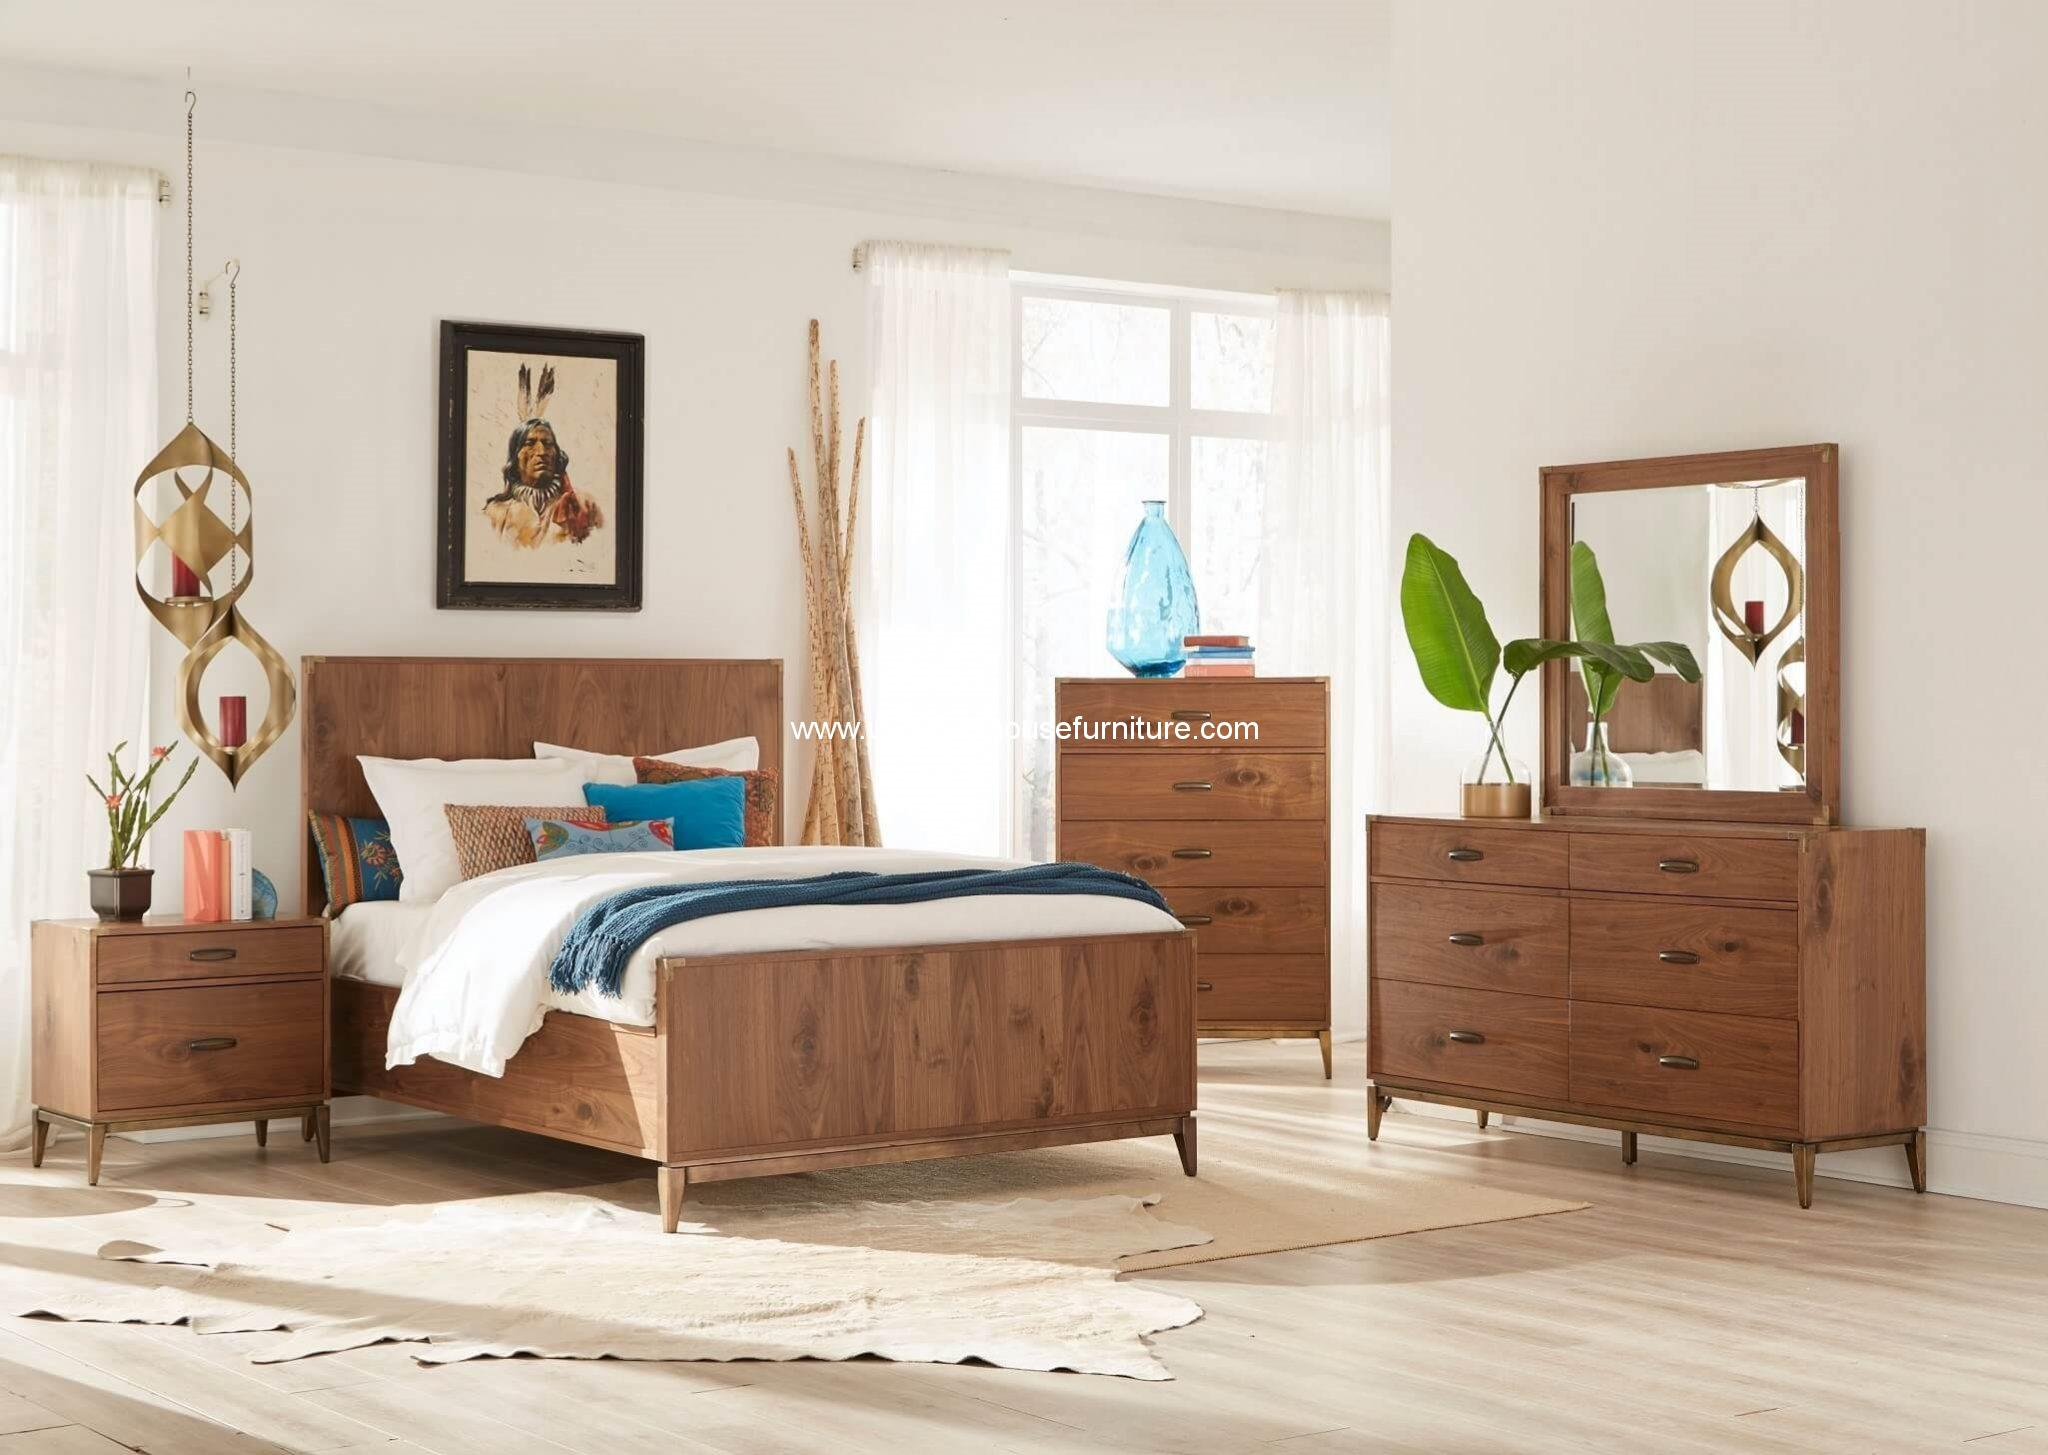 Adler 4 Piece Panel Bedroom Set Usa Warehouse Furniture